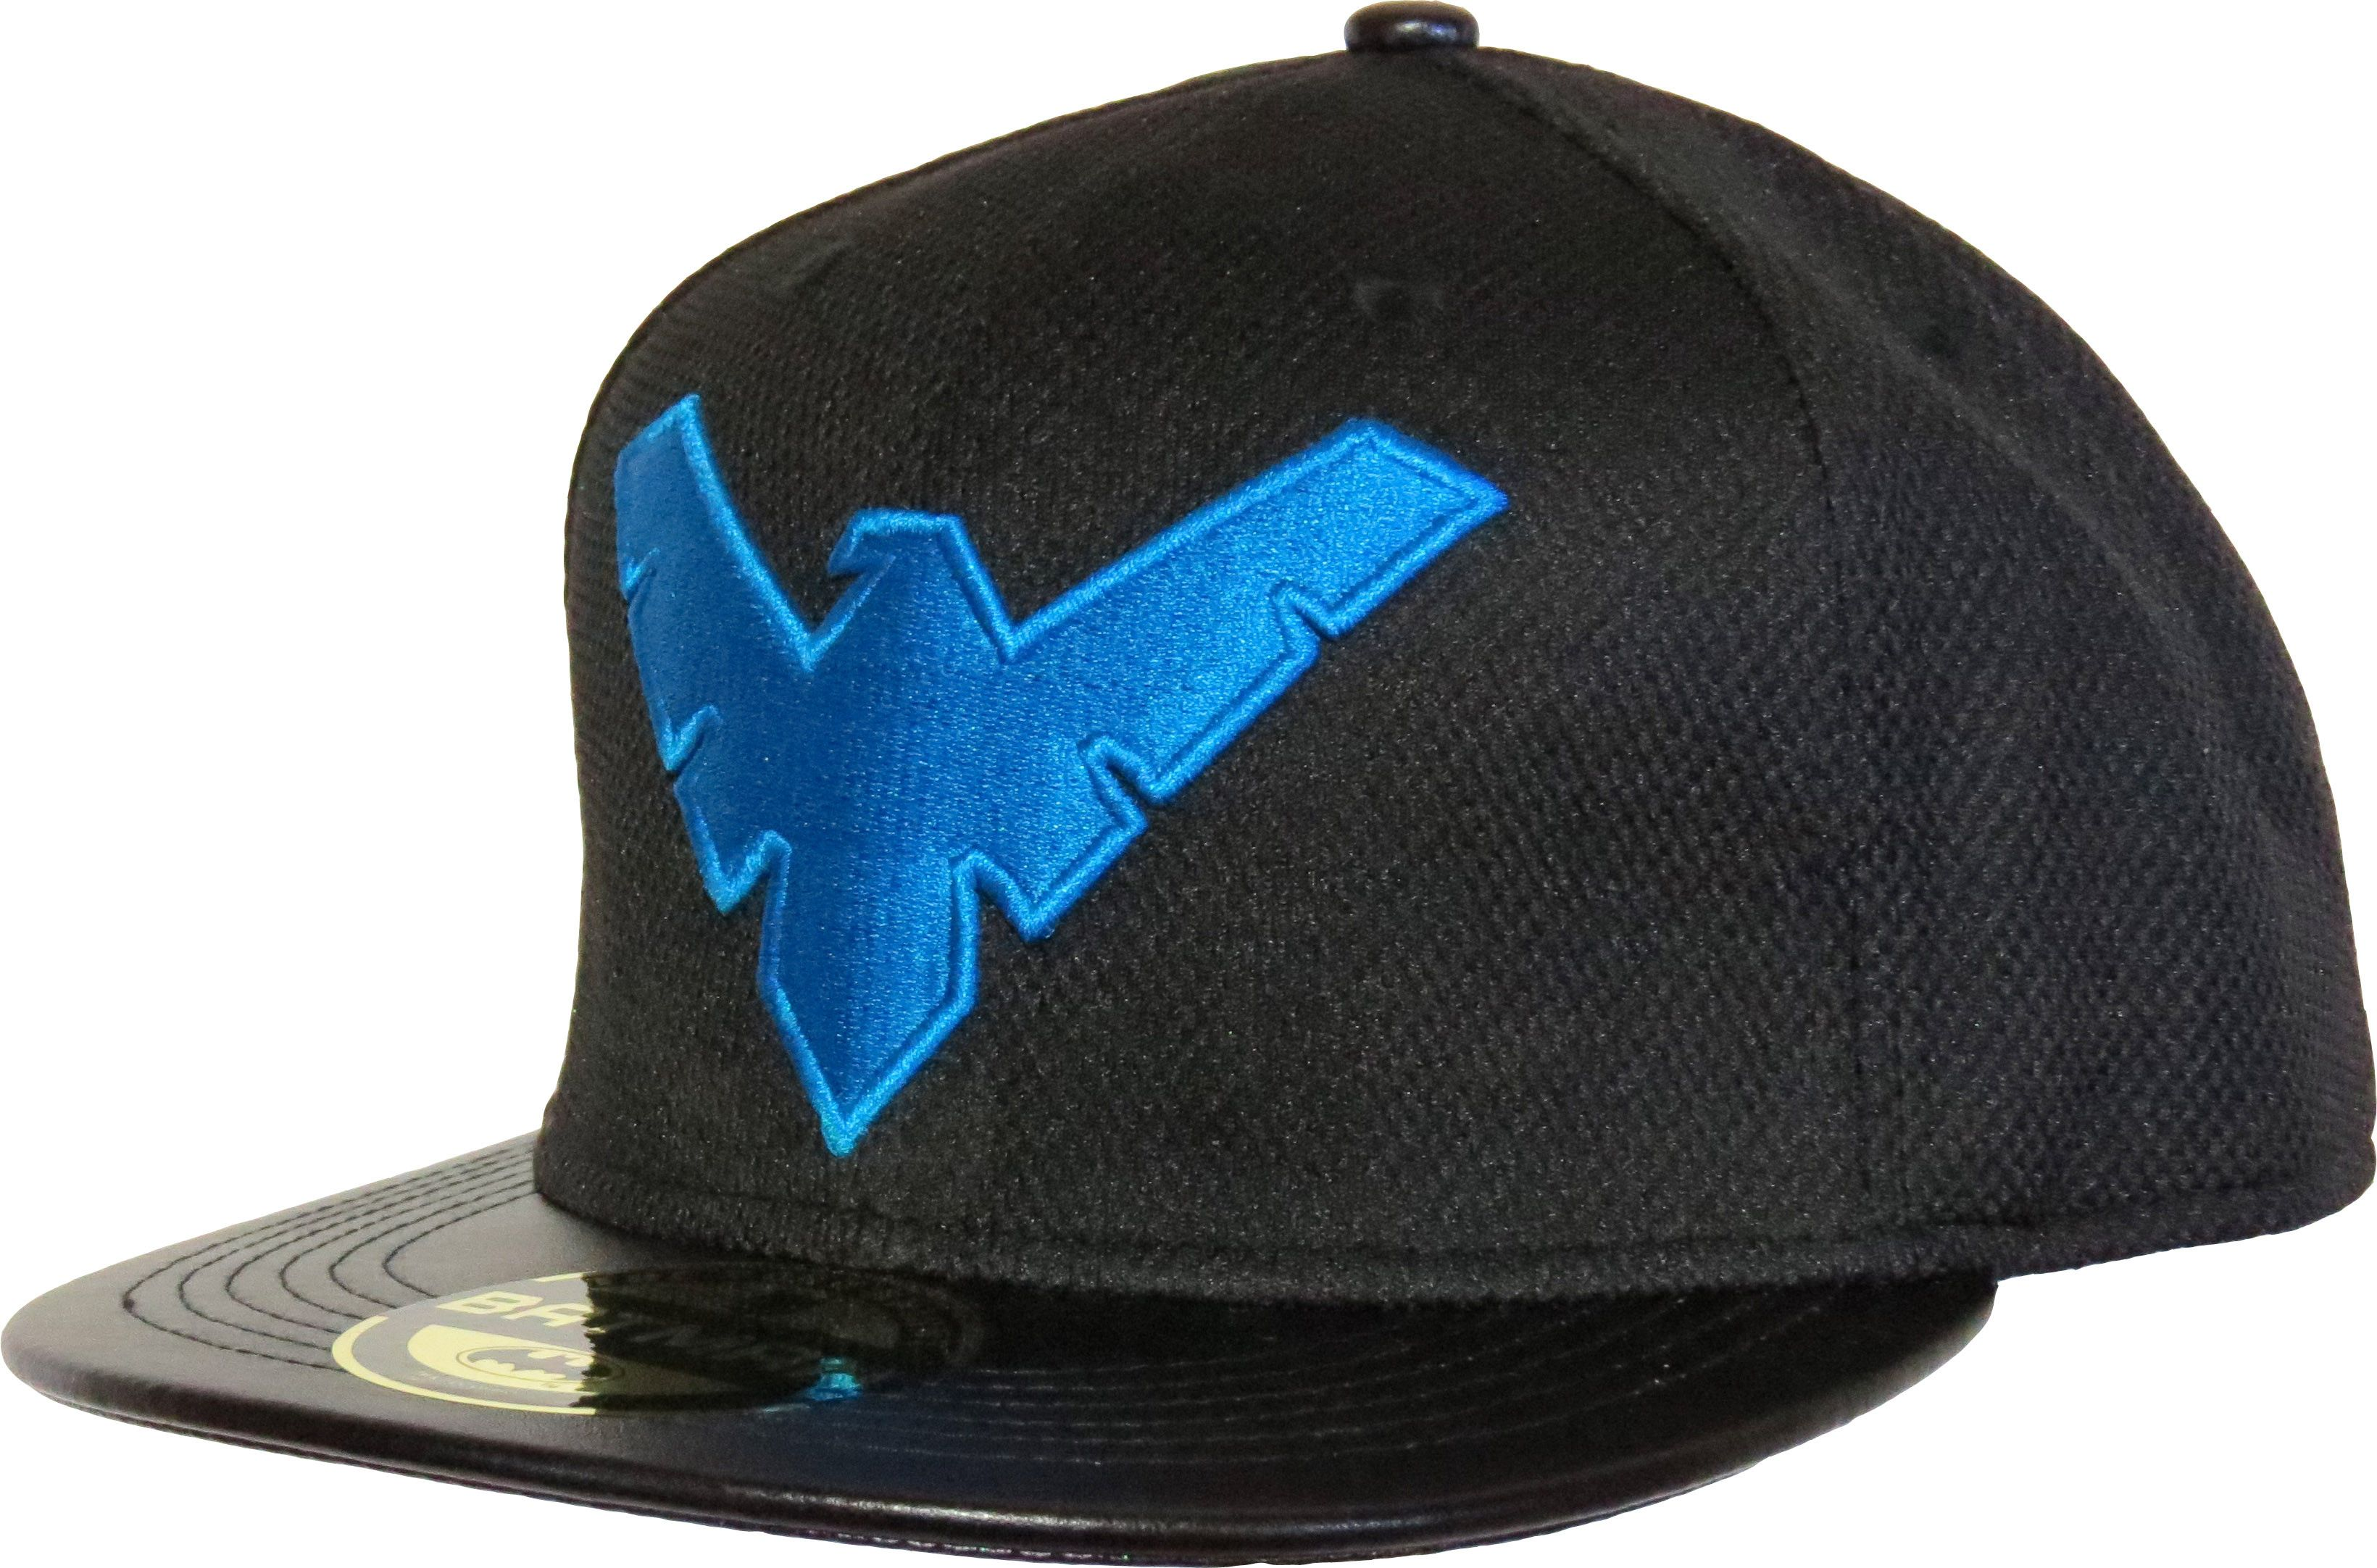 ea3d65bb1c3 ... usa dc comics official batman nightwing snapback cap. black with the  blue nightwing front logo